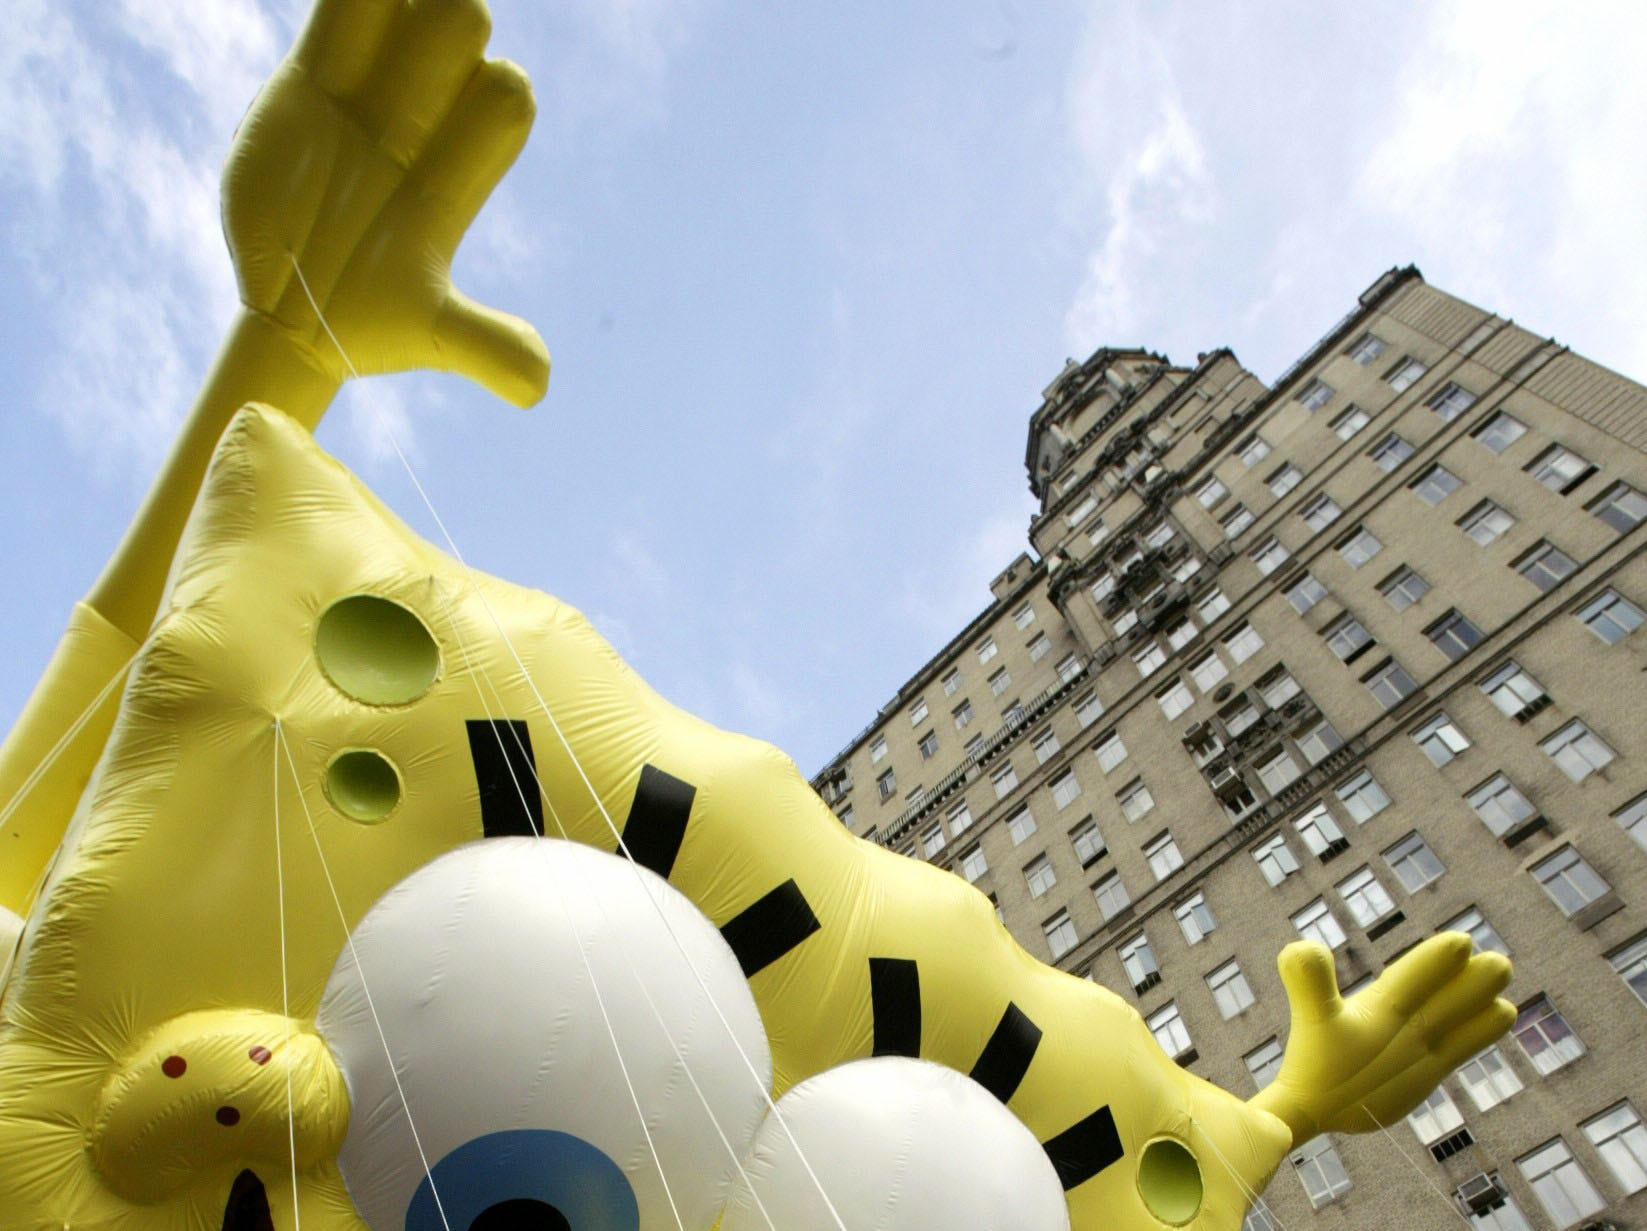 Gwen Deforte unwinds the line connected to the hand of Spongebob Squarepants as the baloon is prepared for its' first Macy's Parade in New York Thursday, Nov. 25, 2004. Thousands of people lined the streets to see the Thanksgiving Day tradition and to cheer on some newcomers like Spongebob.  (AP Photo/Gregory Bull)